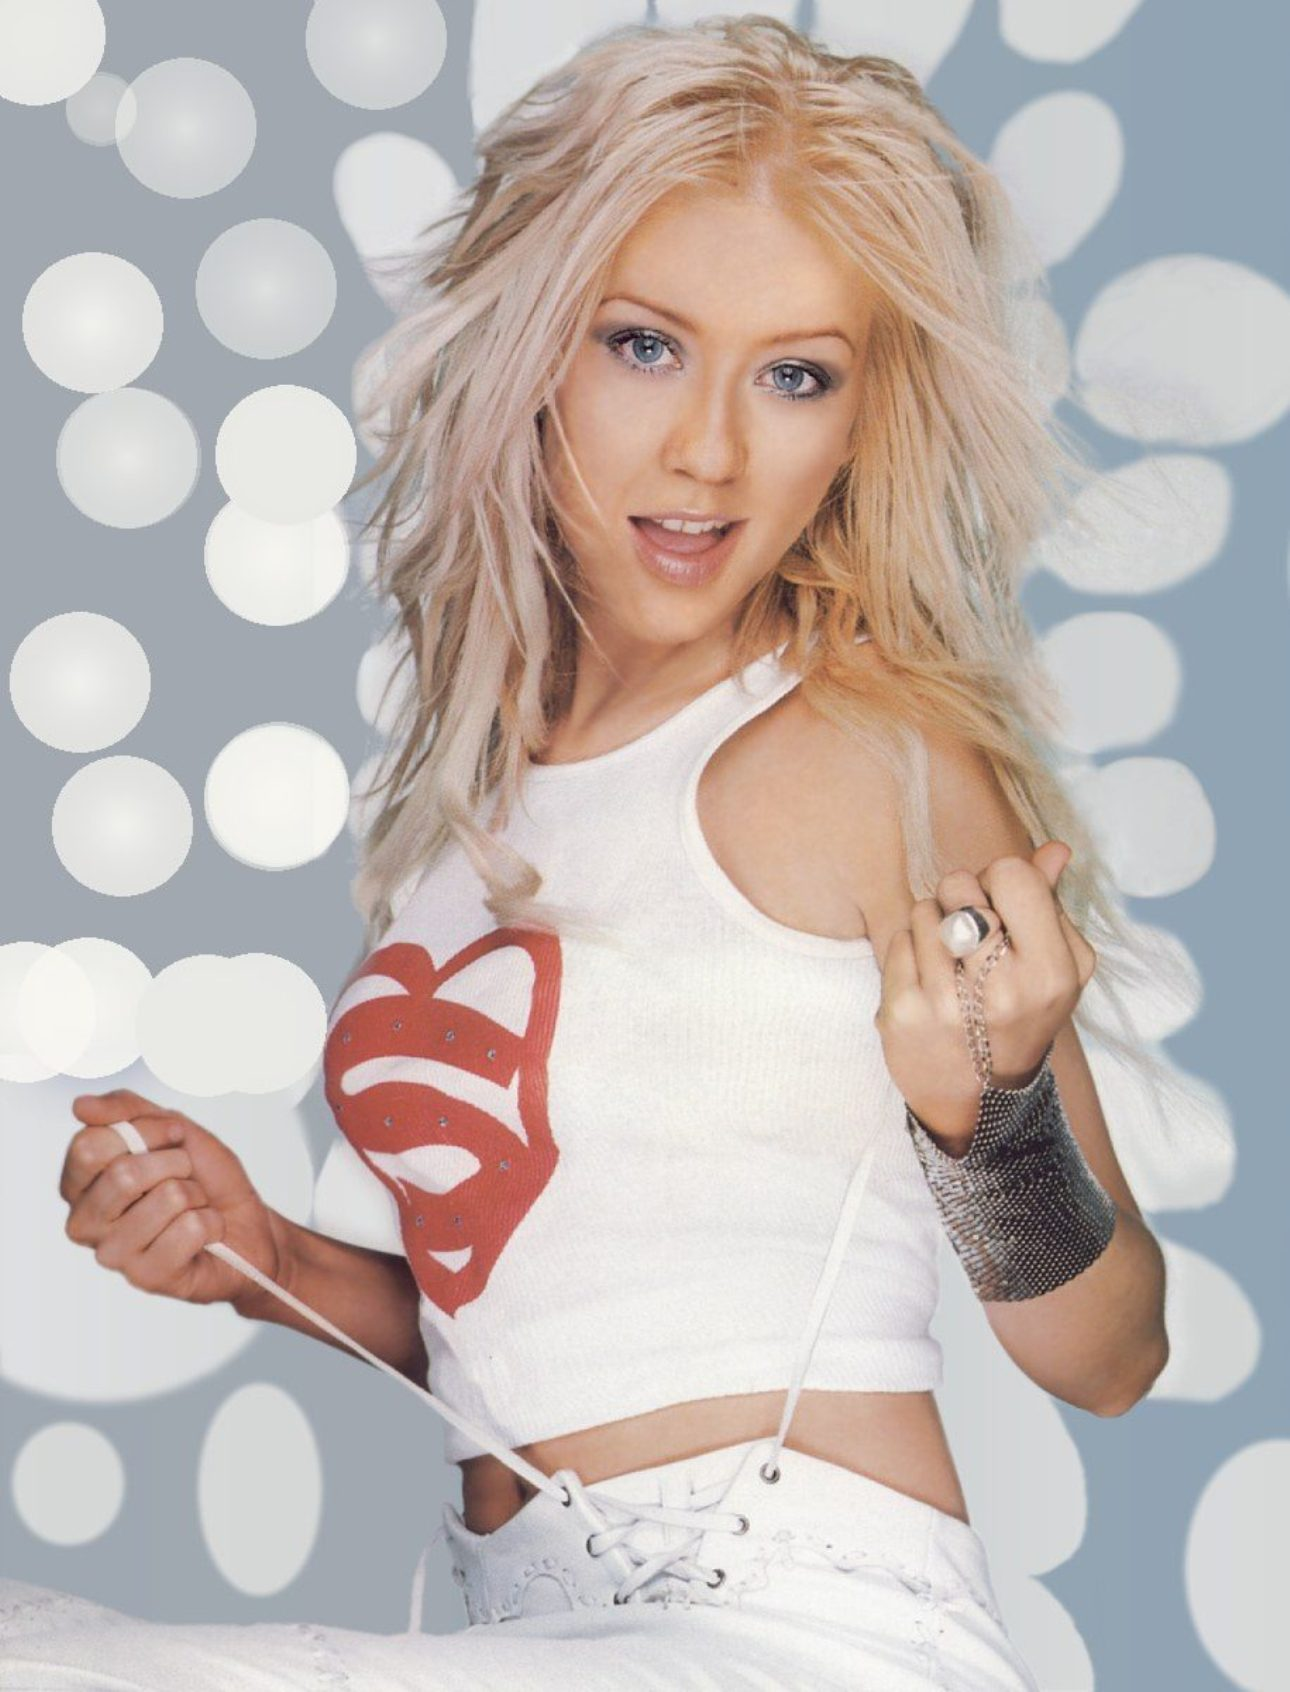 52495_Christina_Aguilera-009425_Isabel_Snyder_photoshoot_122_362lo.jpg